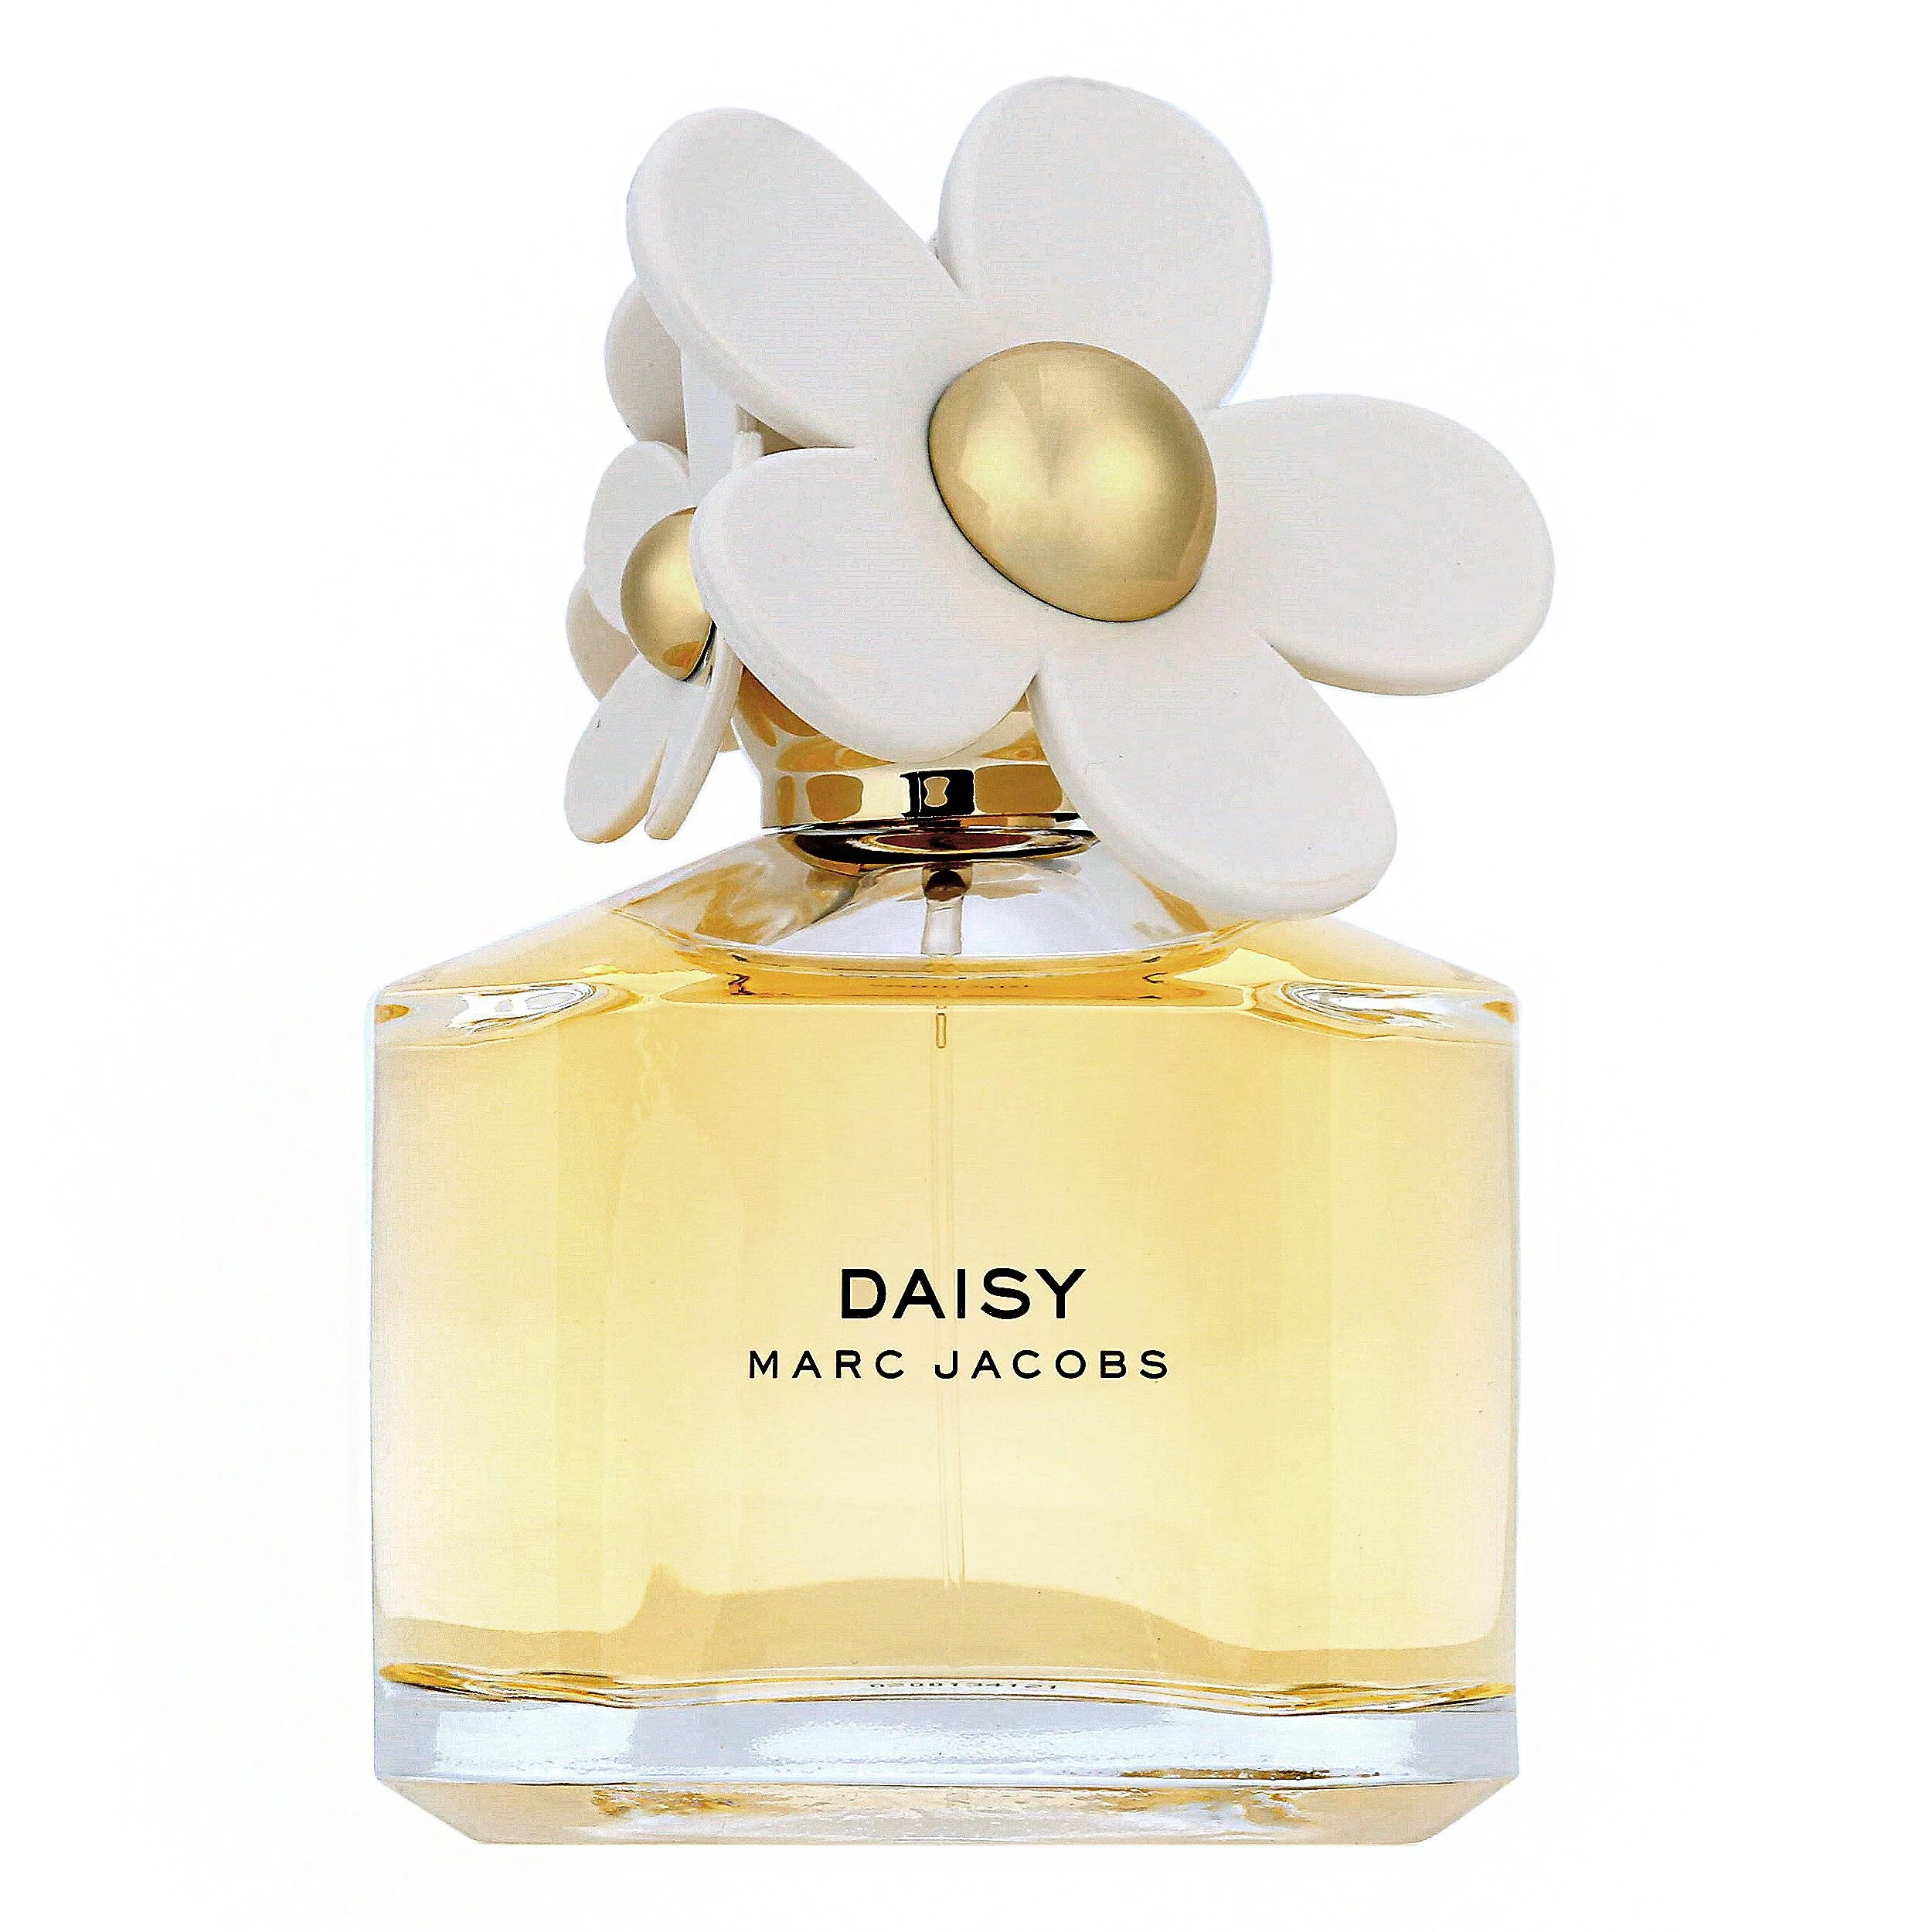 Marc Jacobs Daisy Eau de Toilette Spray, Perfume for Women, 3.4 Oz